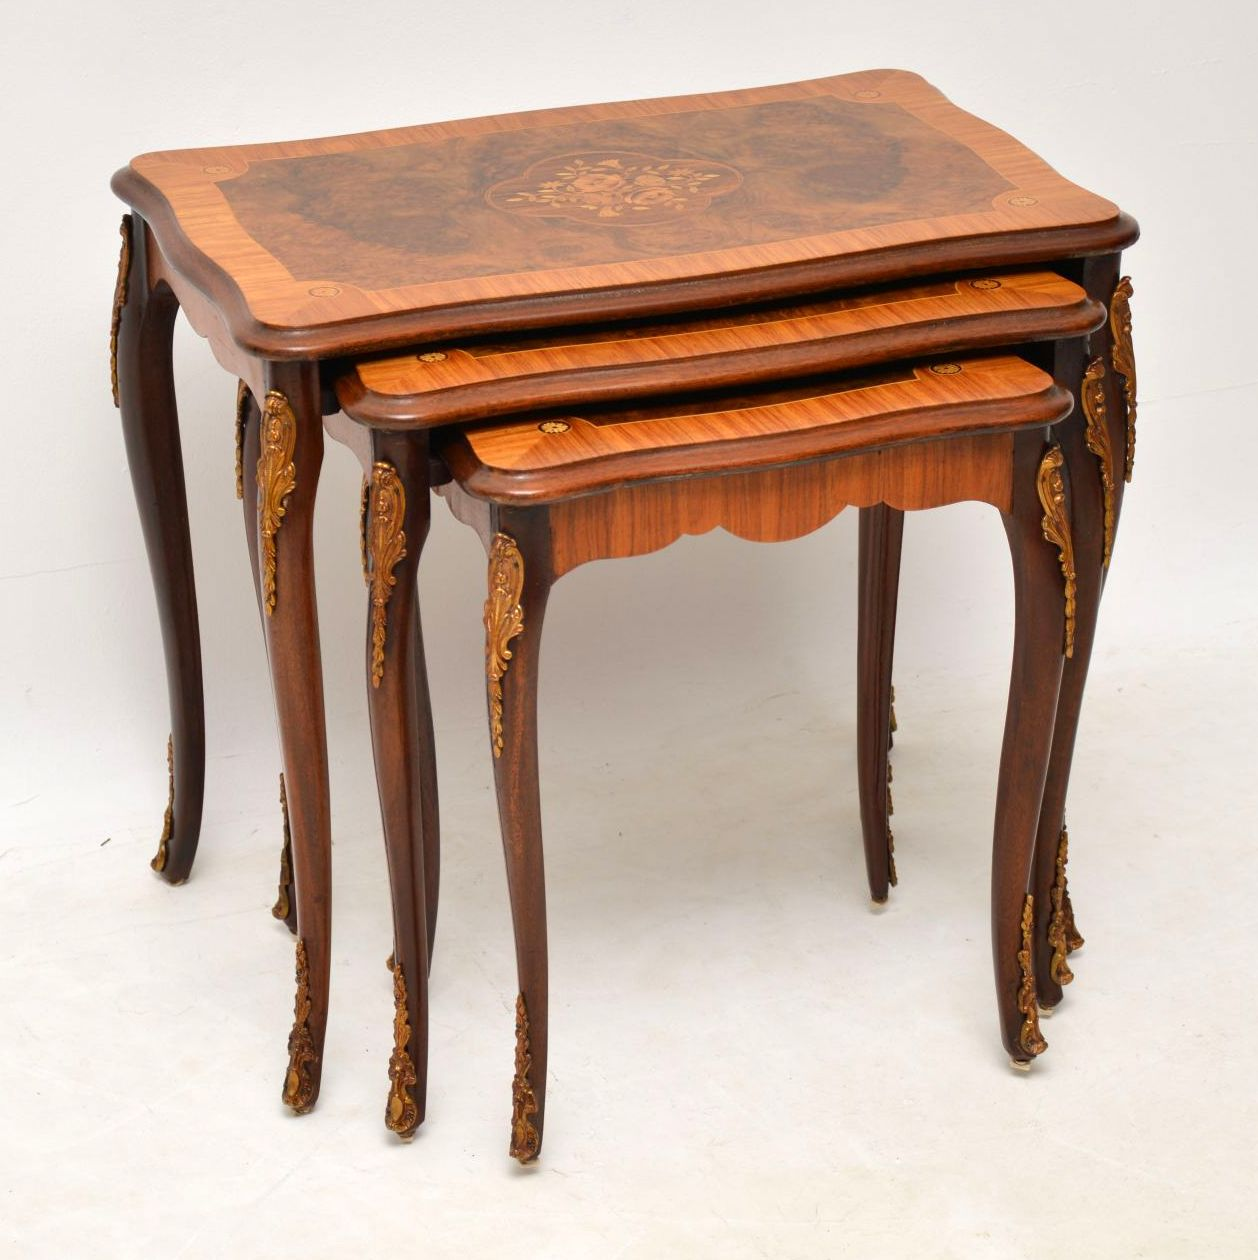 Antique French Nest of Tables